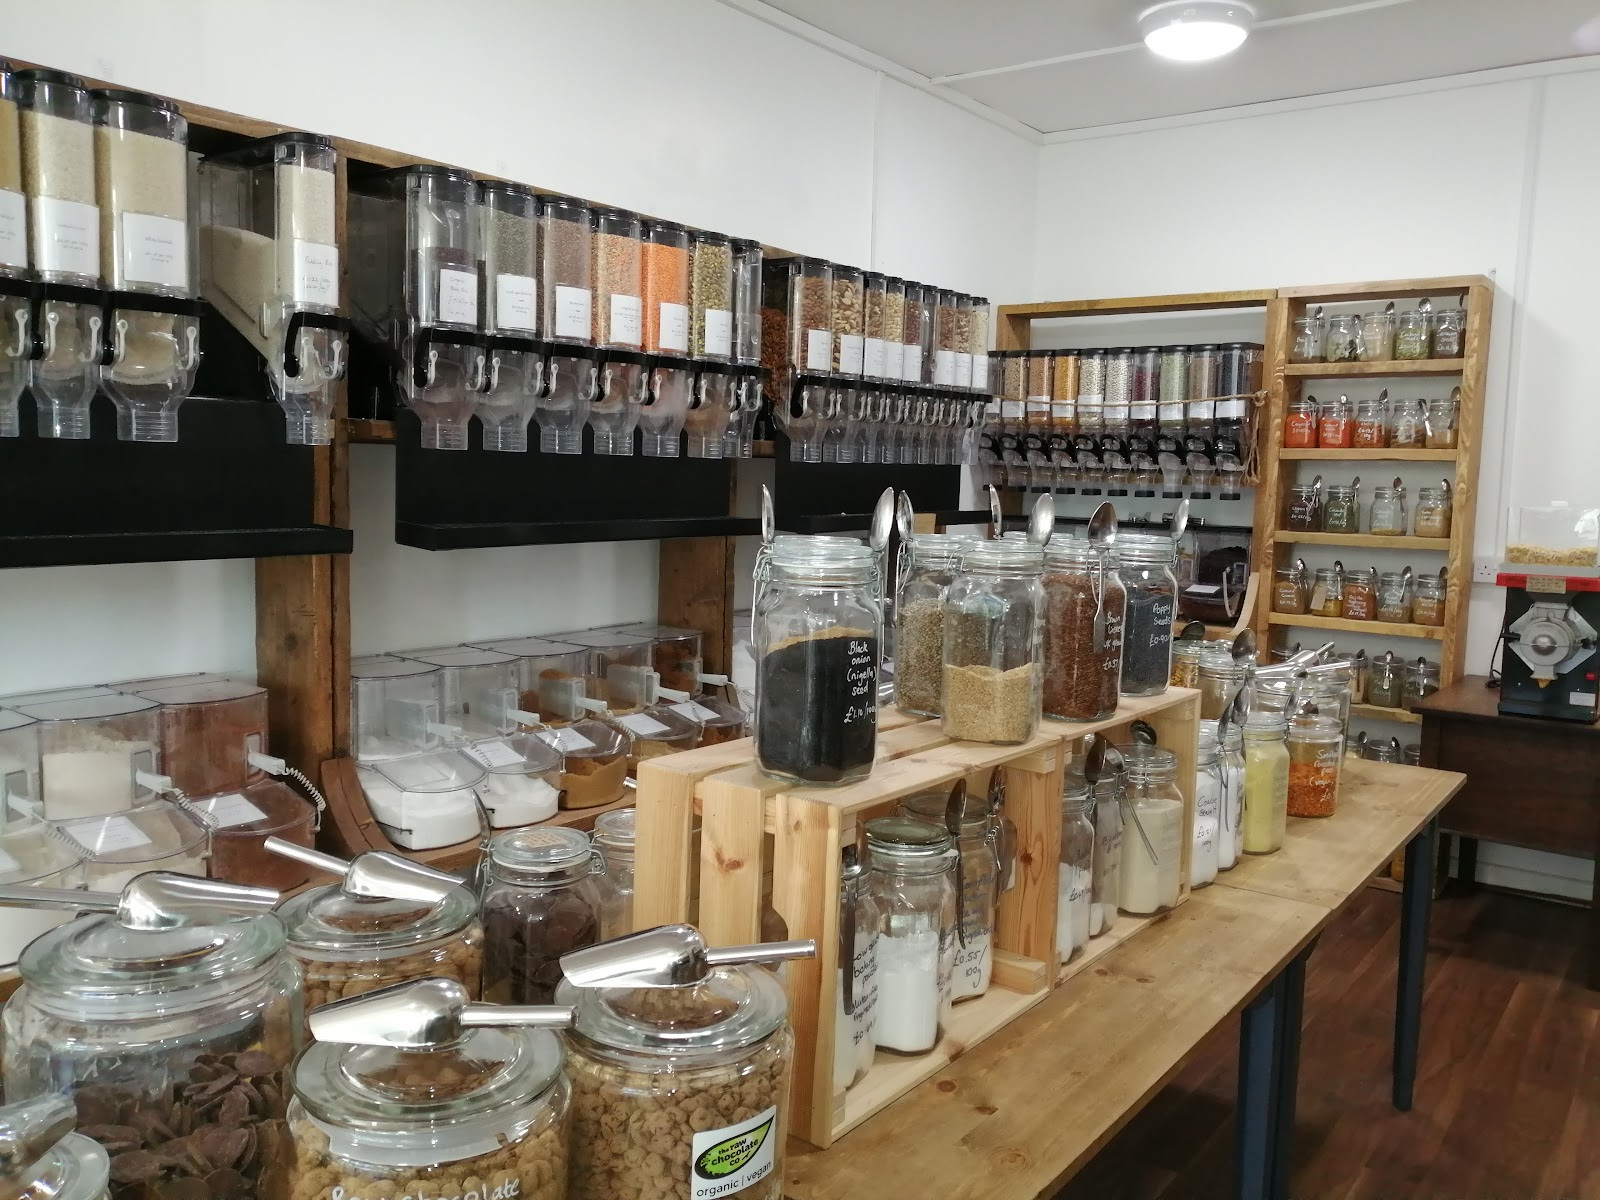 Inside Unwrapped. Containers filled with store cupboard essentials like flour, sugar, dried pulses and much more; a peanut butter dispenser; a wonderful range of chocolate and sweet treats as well as a selection of herbs, spices and snacks.